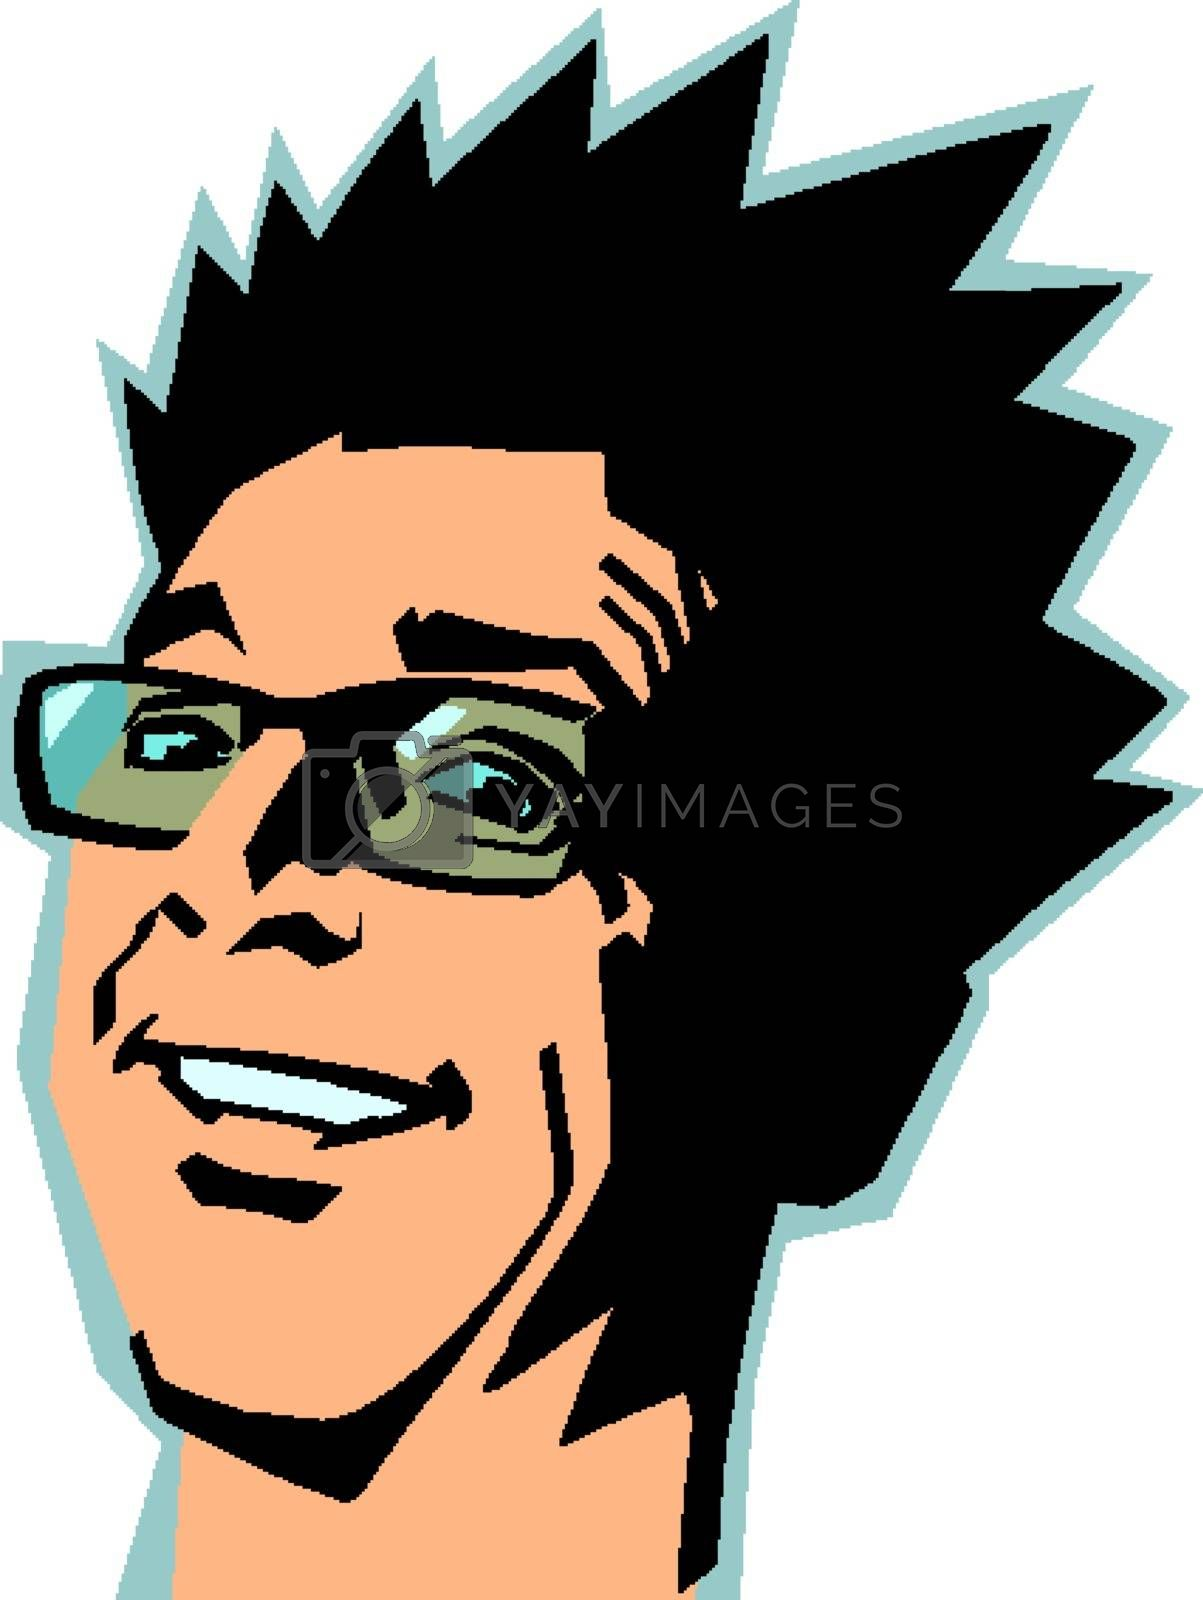 smiling man. joyful emotions comic cartoon pop art retro vector illustration drawing